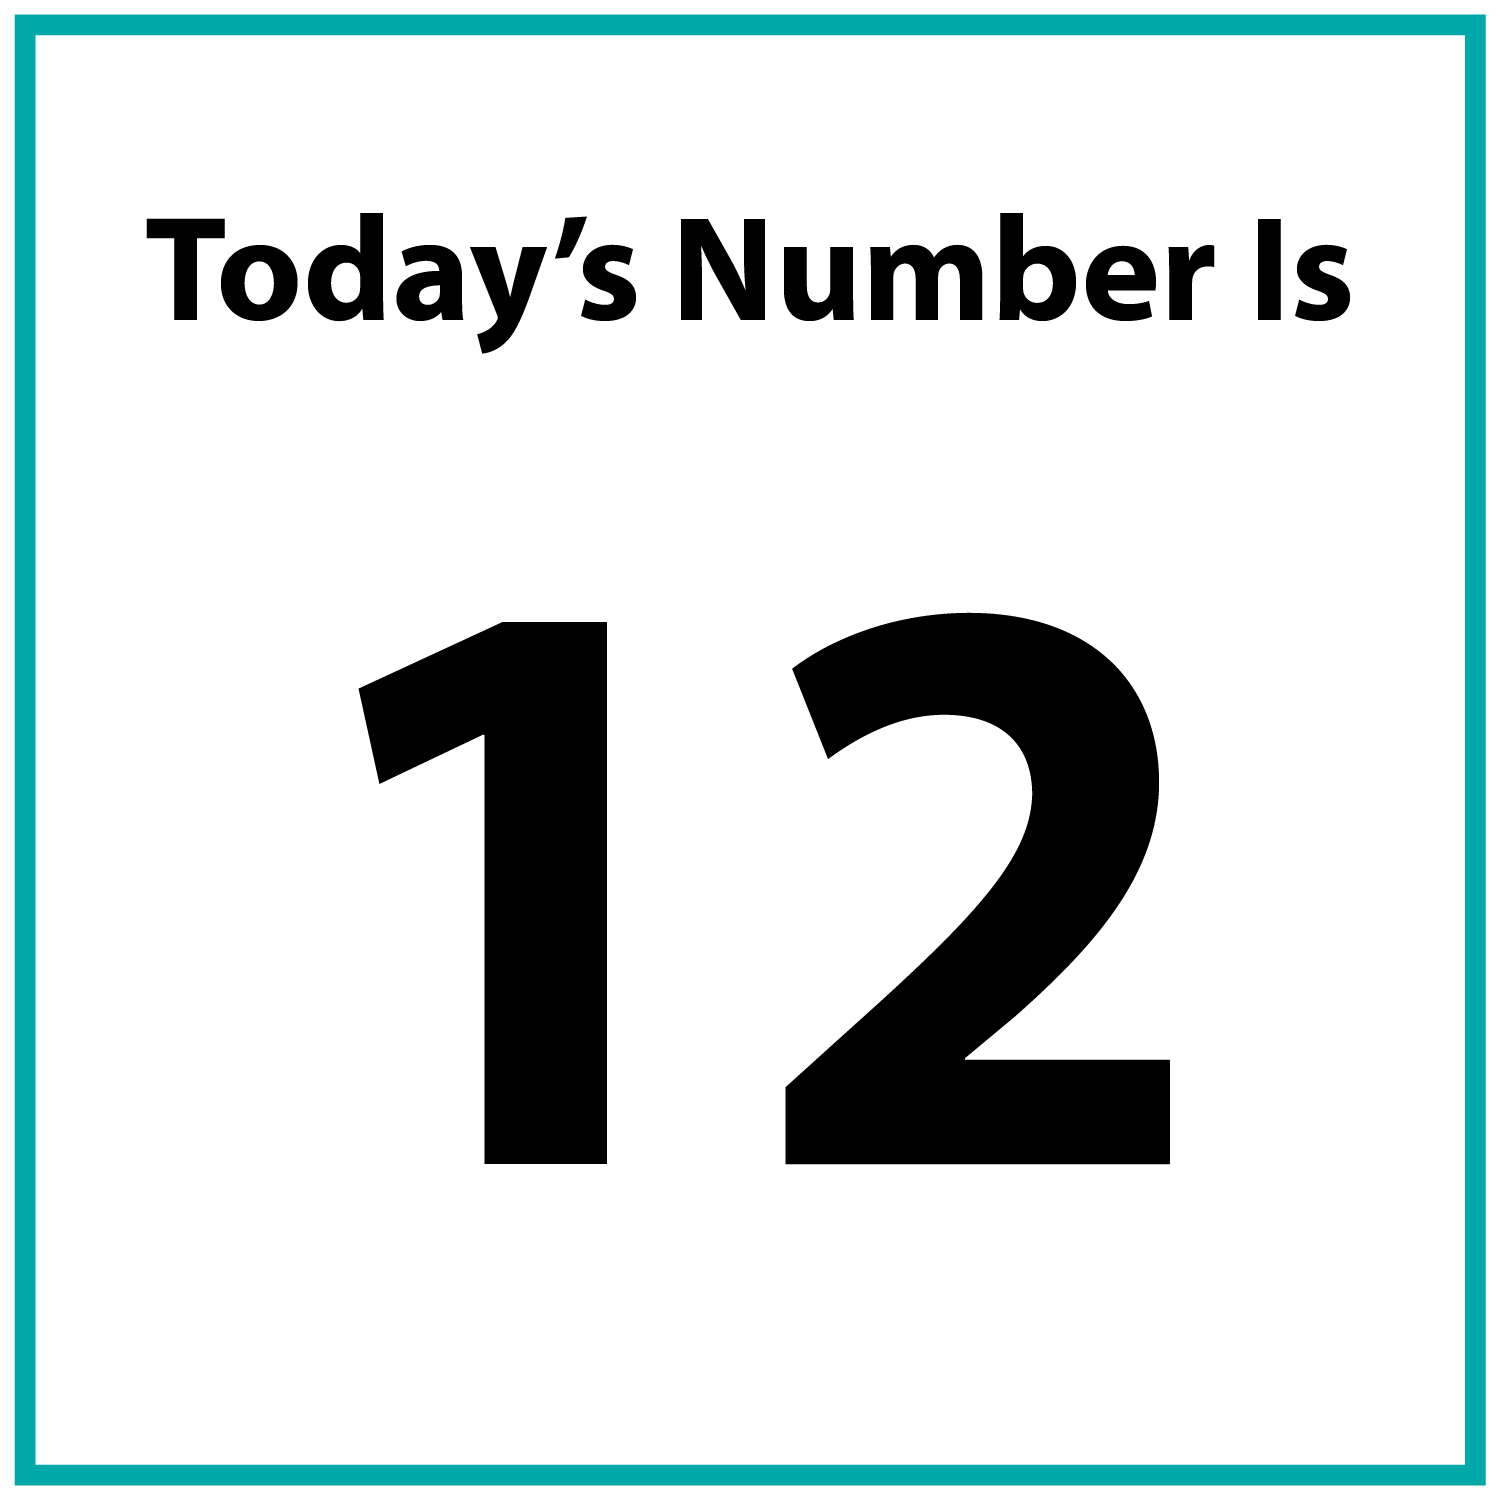 Today's number is 12.